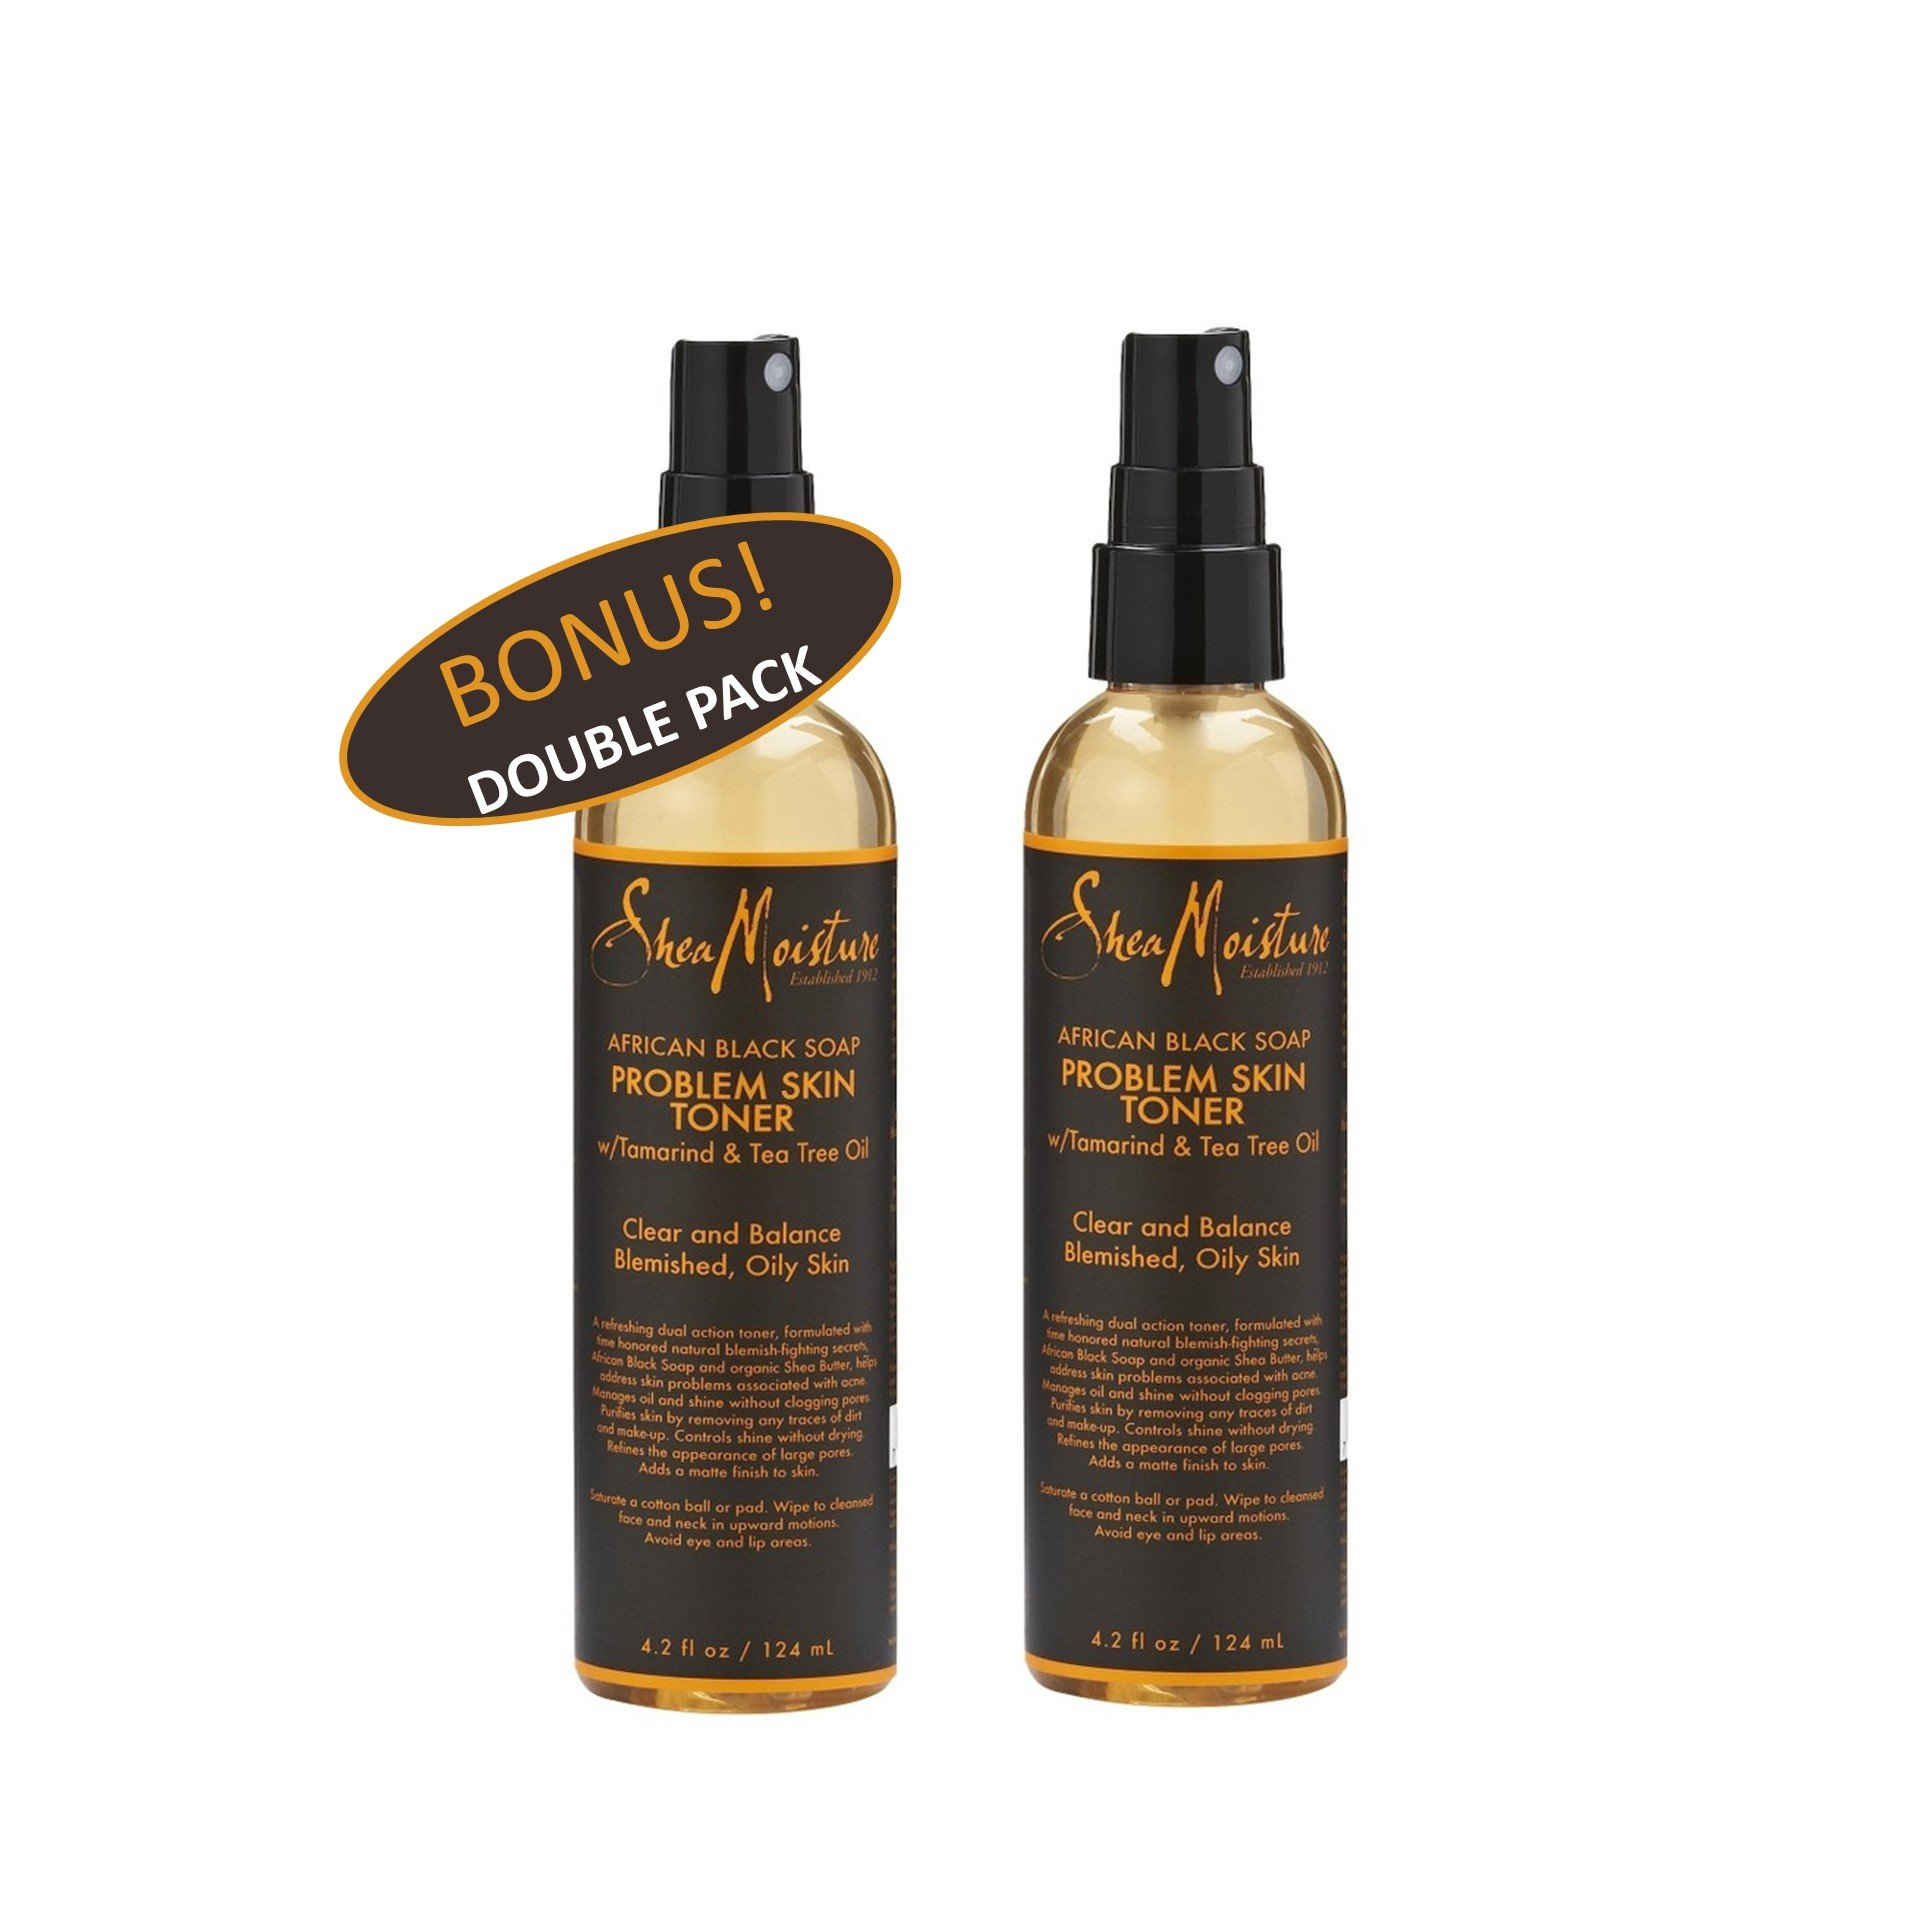 Shea Moisture African Black Soap Problem Skin Toner w/ Tamarind & Tea Tree oil 4.2 oz Value Double Pack qty of 2 Each by Shea Moisture